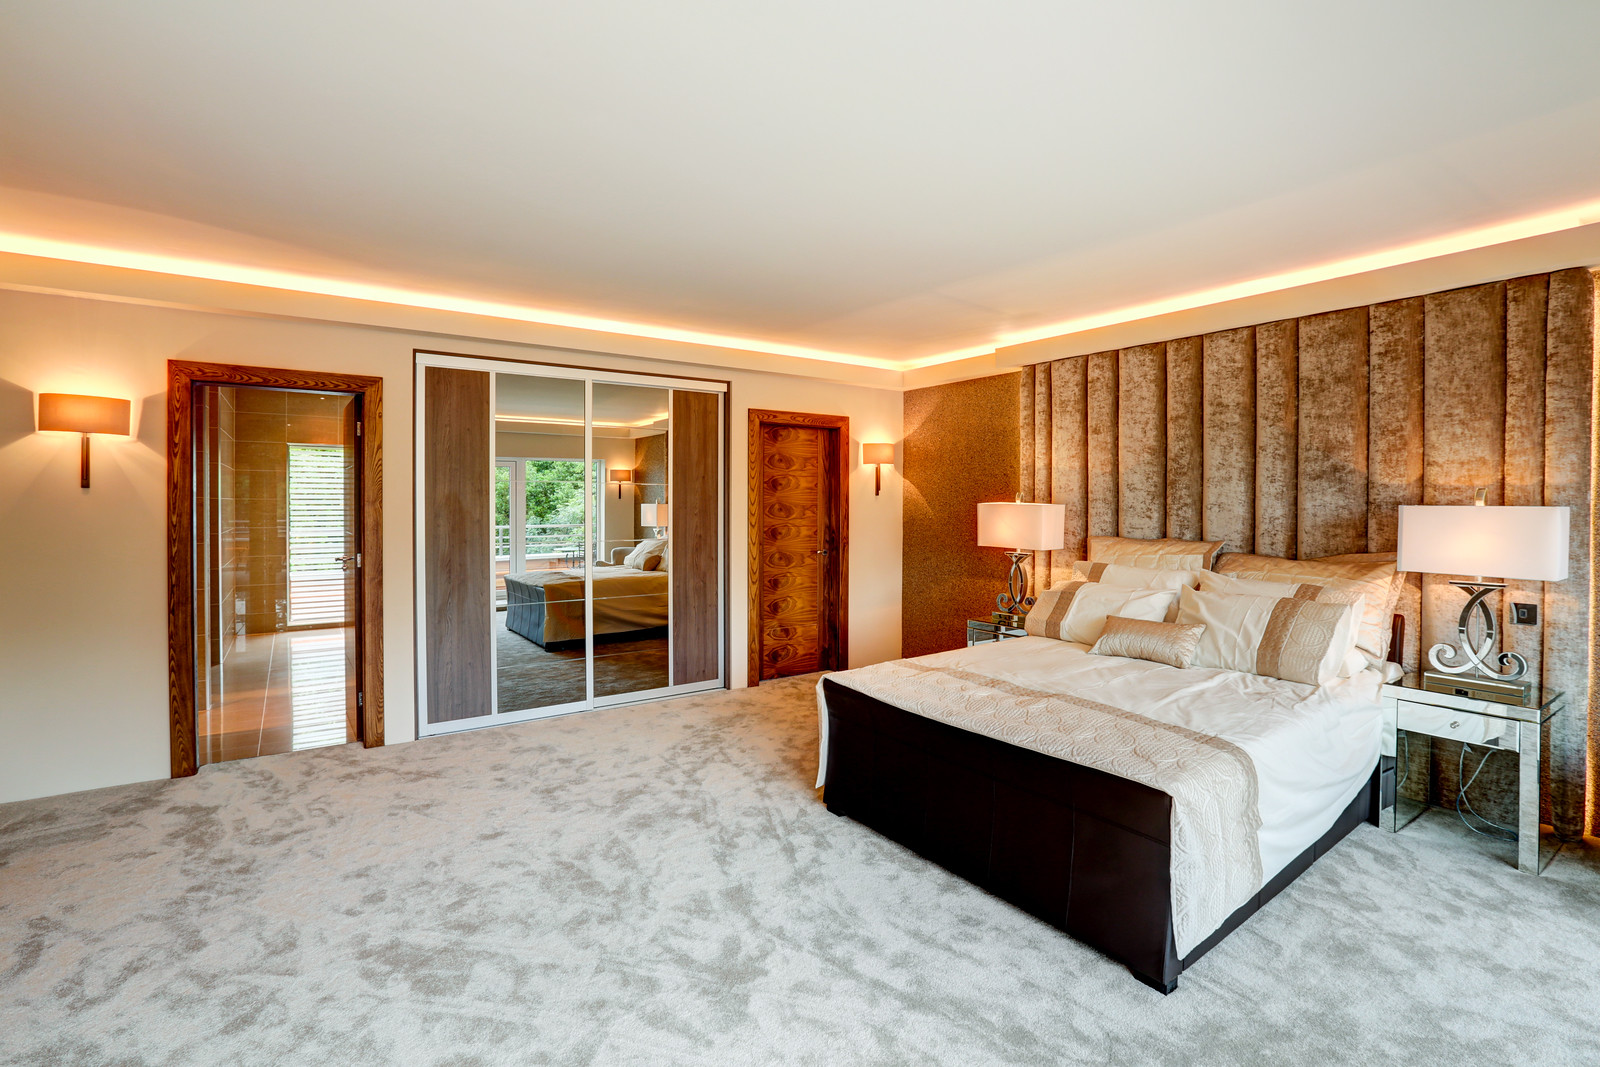 Luxury bedroom at the White House by Guy Phoenix